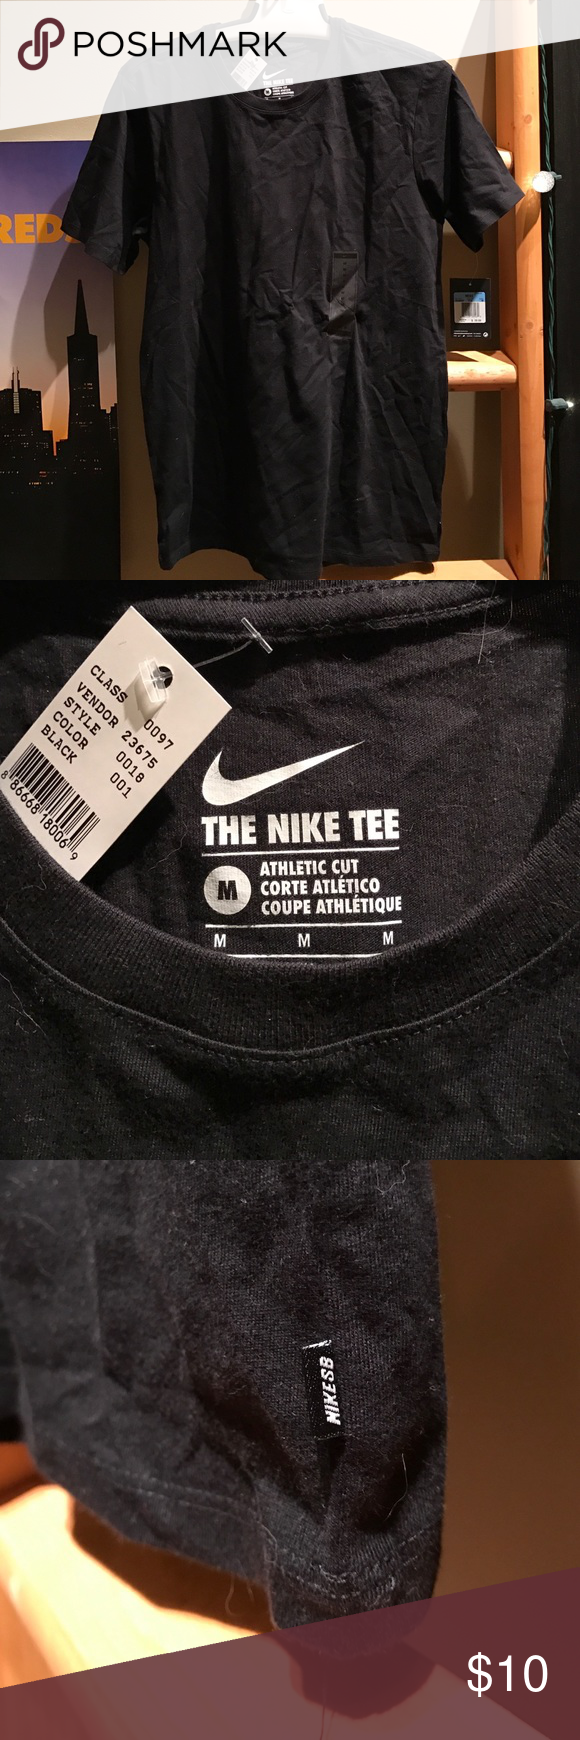 Nike SB Athletic Tee It's super basic. Can't get more basic. Overpriced plain ass Chinese made tee shirt. NEW WITH TAGS. UNISEX af. ‼️I ACCEPT REASONABLE OFFERS!!!😃 Nike Shirts Tees - Short Sleeve